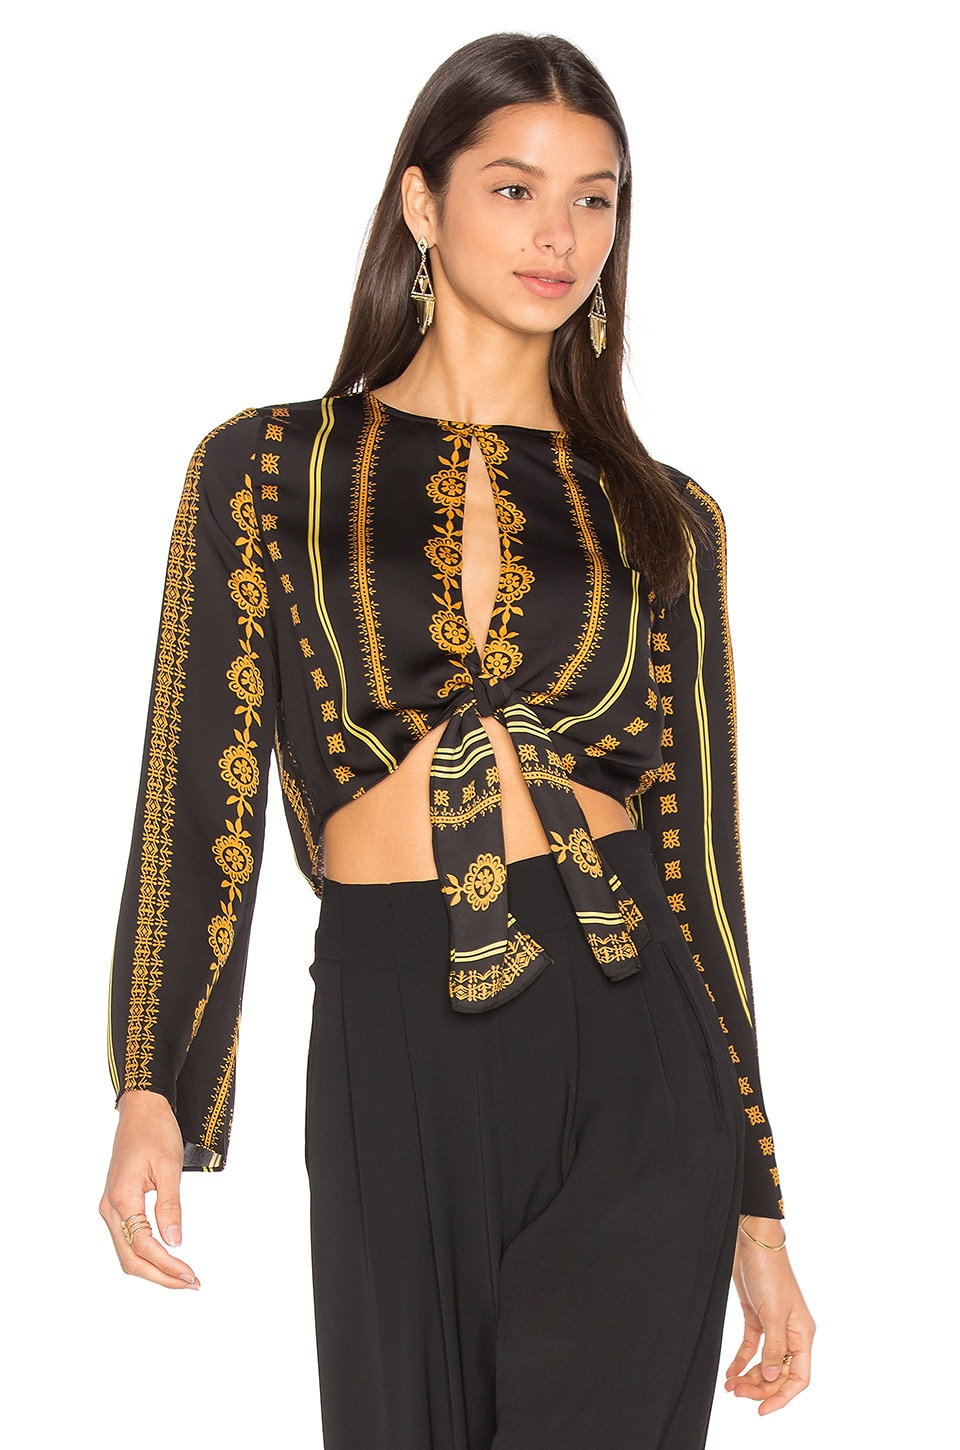 House of Harlow 1960 x REVOLVE Jane Blouse in Noir Pajama Print